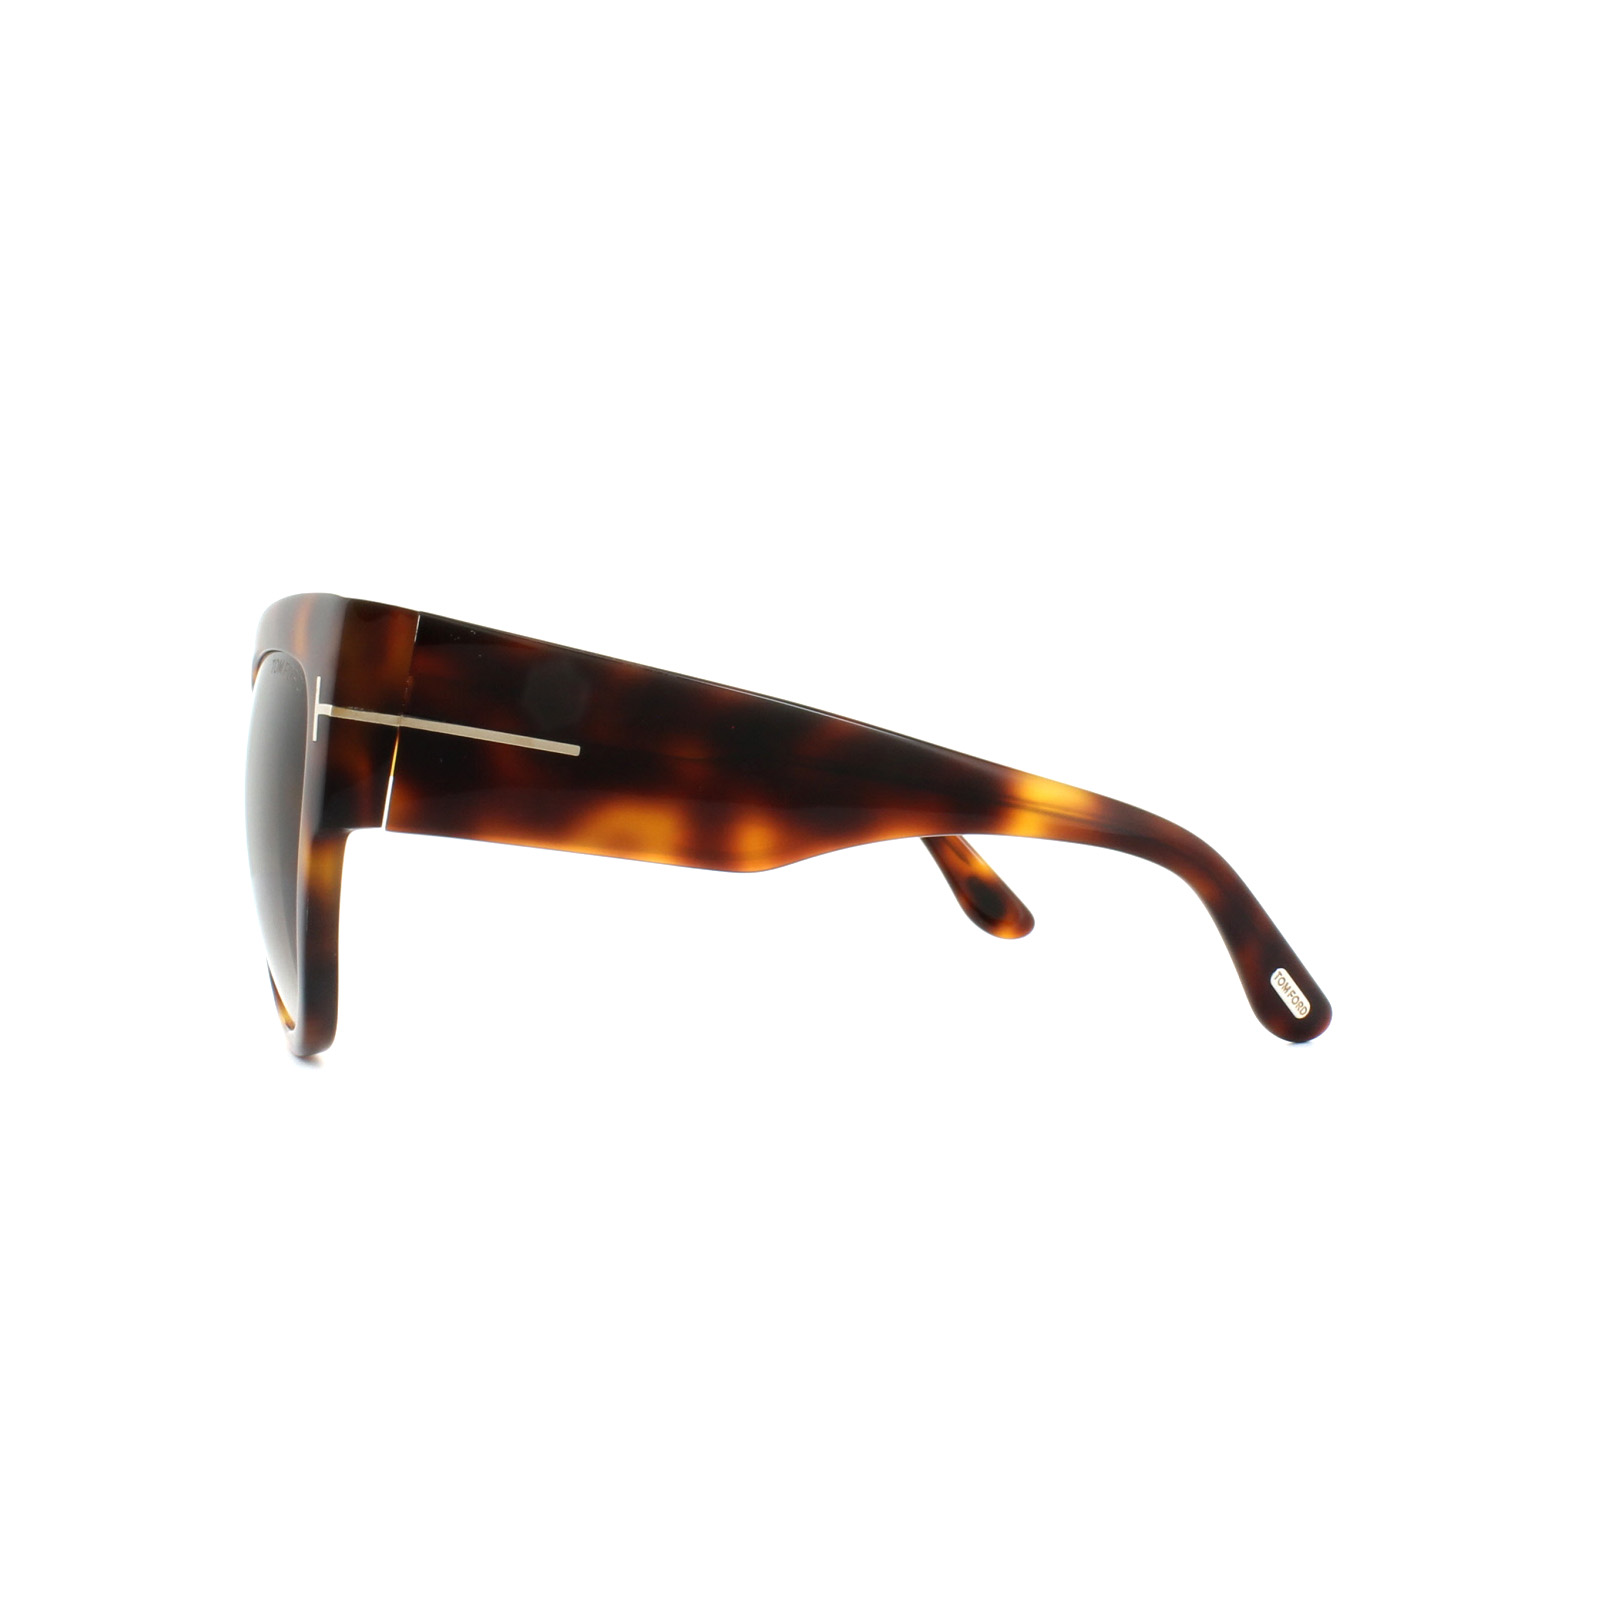 711e21f0d8 Cheap Tom Ford 0371 Anoushka Sunglasses - Discounted Sunglasses